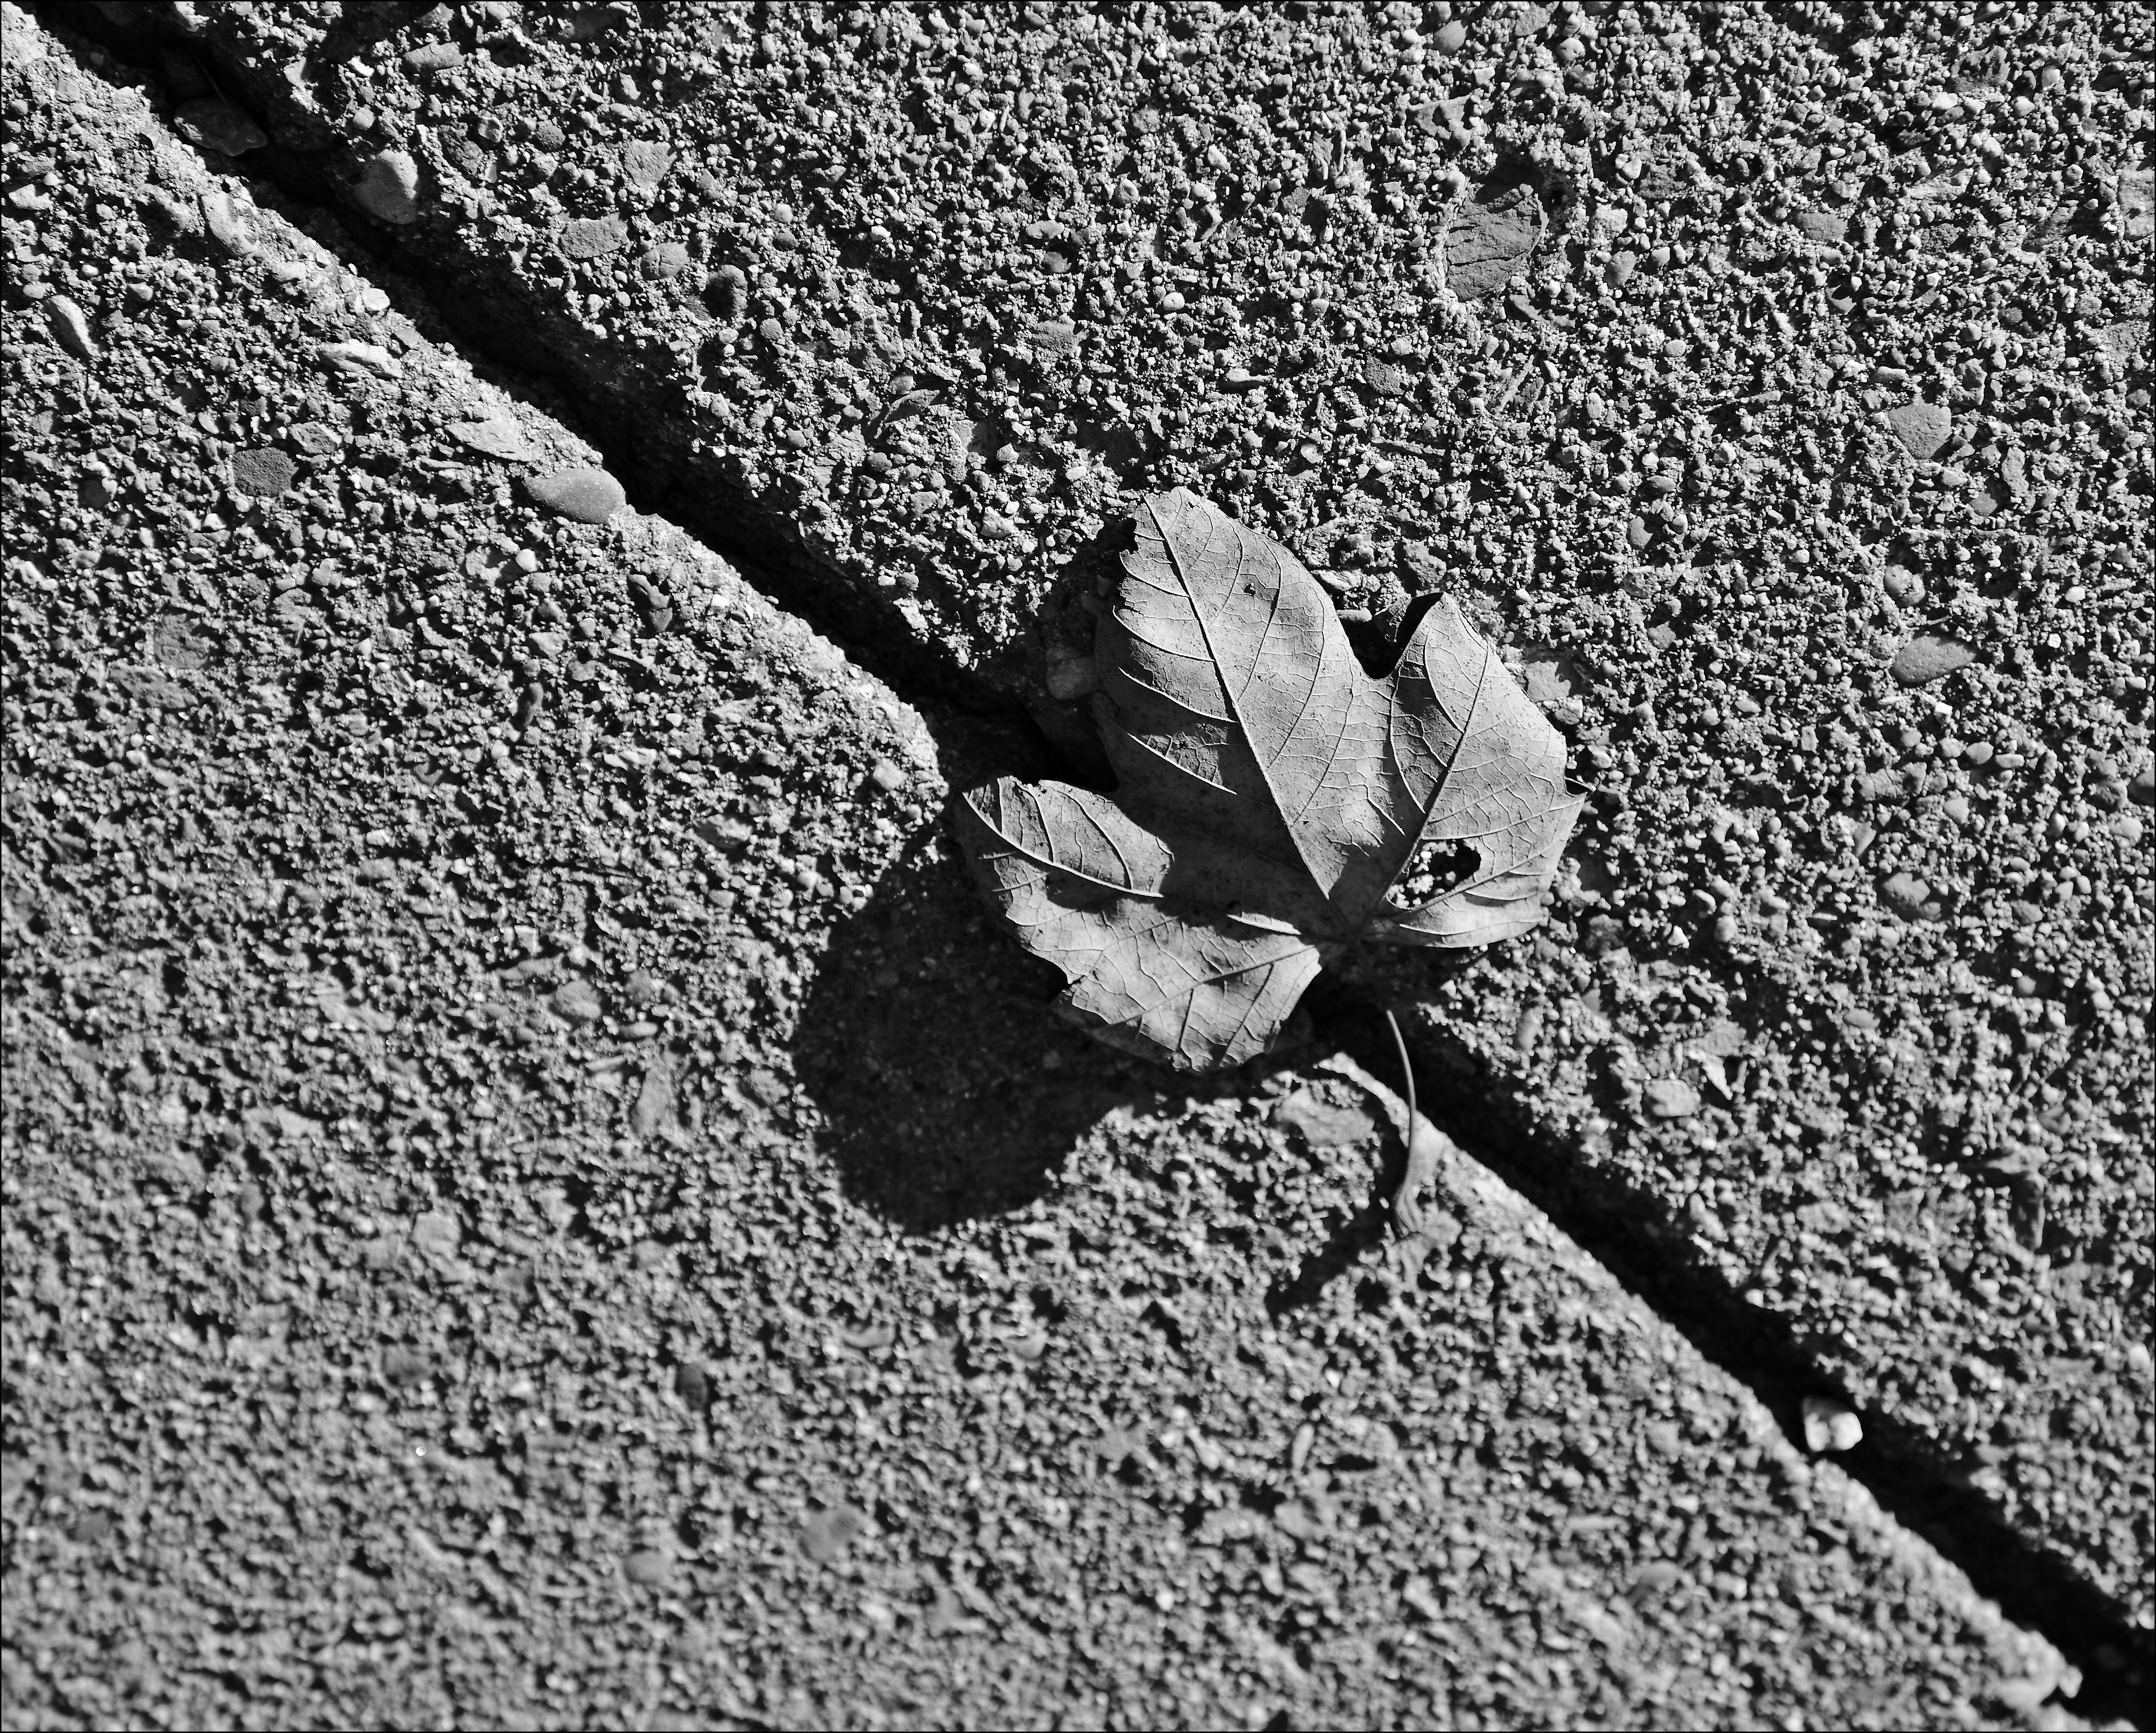 B&W Challenge: #3. bw, canon, leaf, challenge, 6d. buy photo